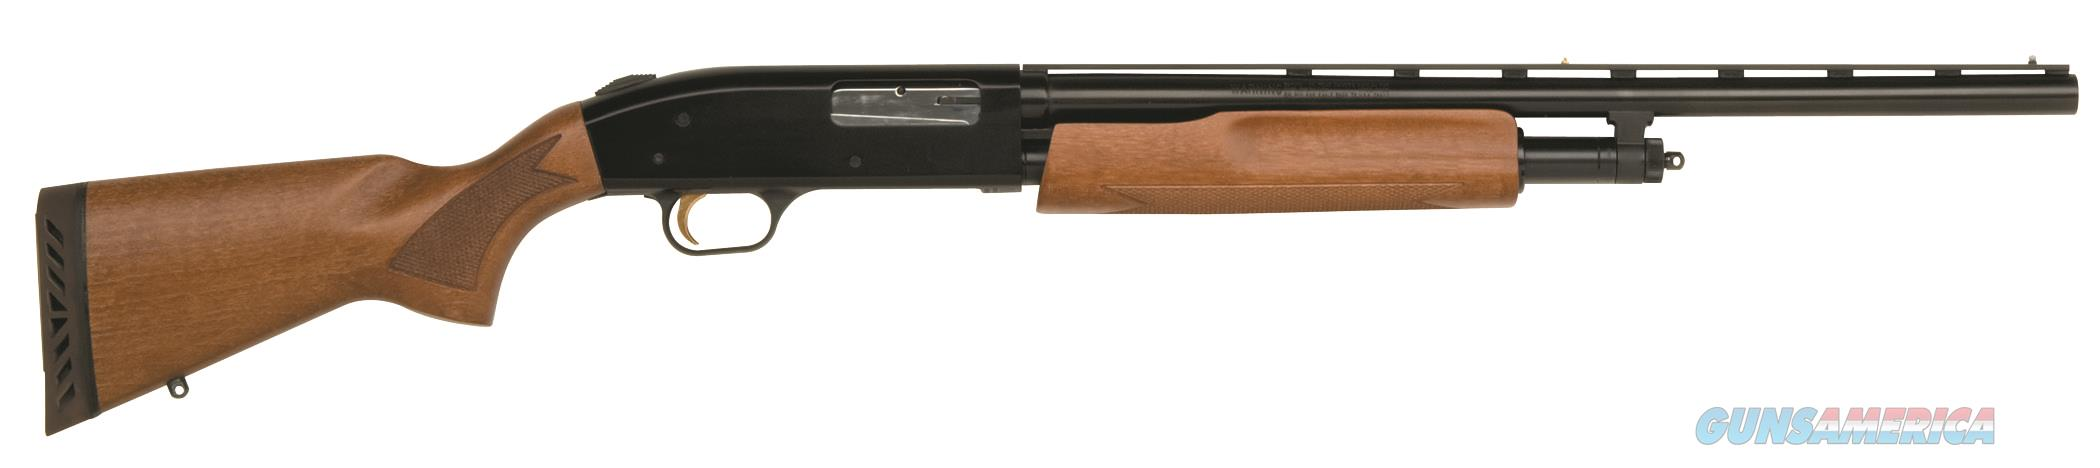 Mossburg 505 Youth 20ga Pump  Guns > Shotguns > Mossberg Shotguns > Pump > Sporting